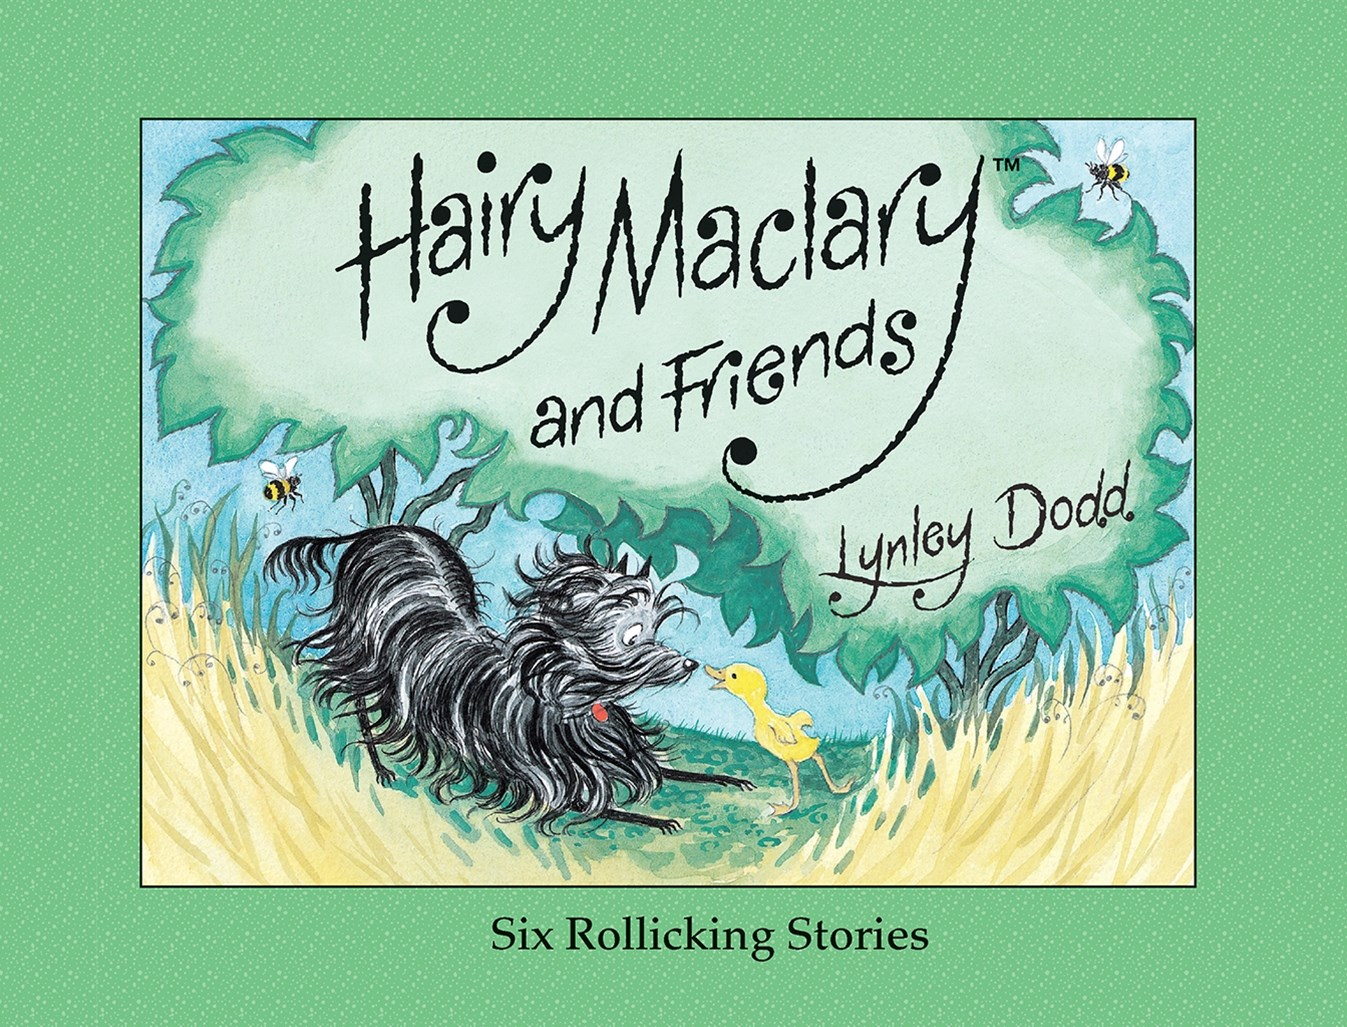 Hairy Maclary And Friends: Six Rollicking Stories